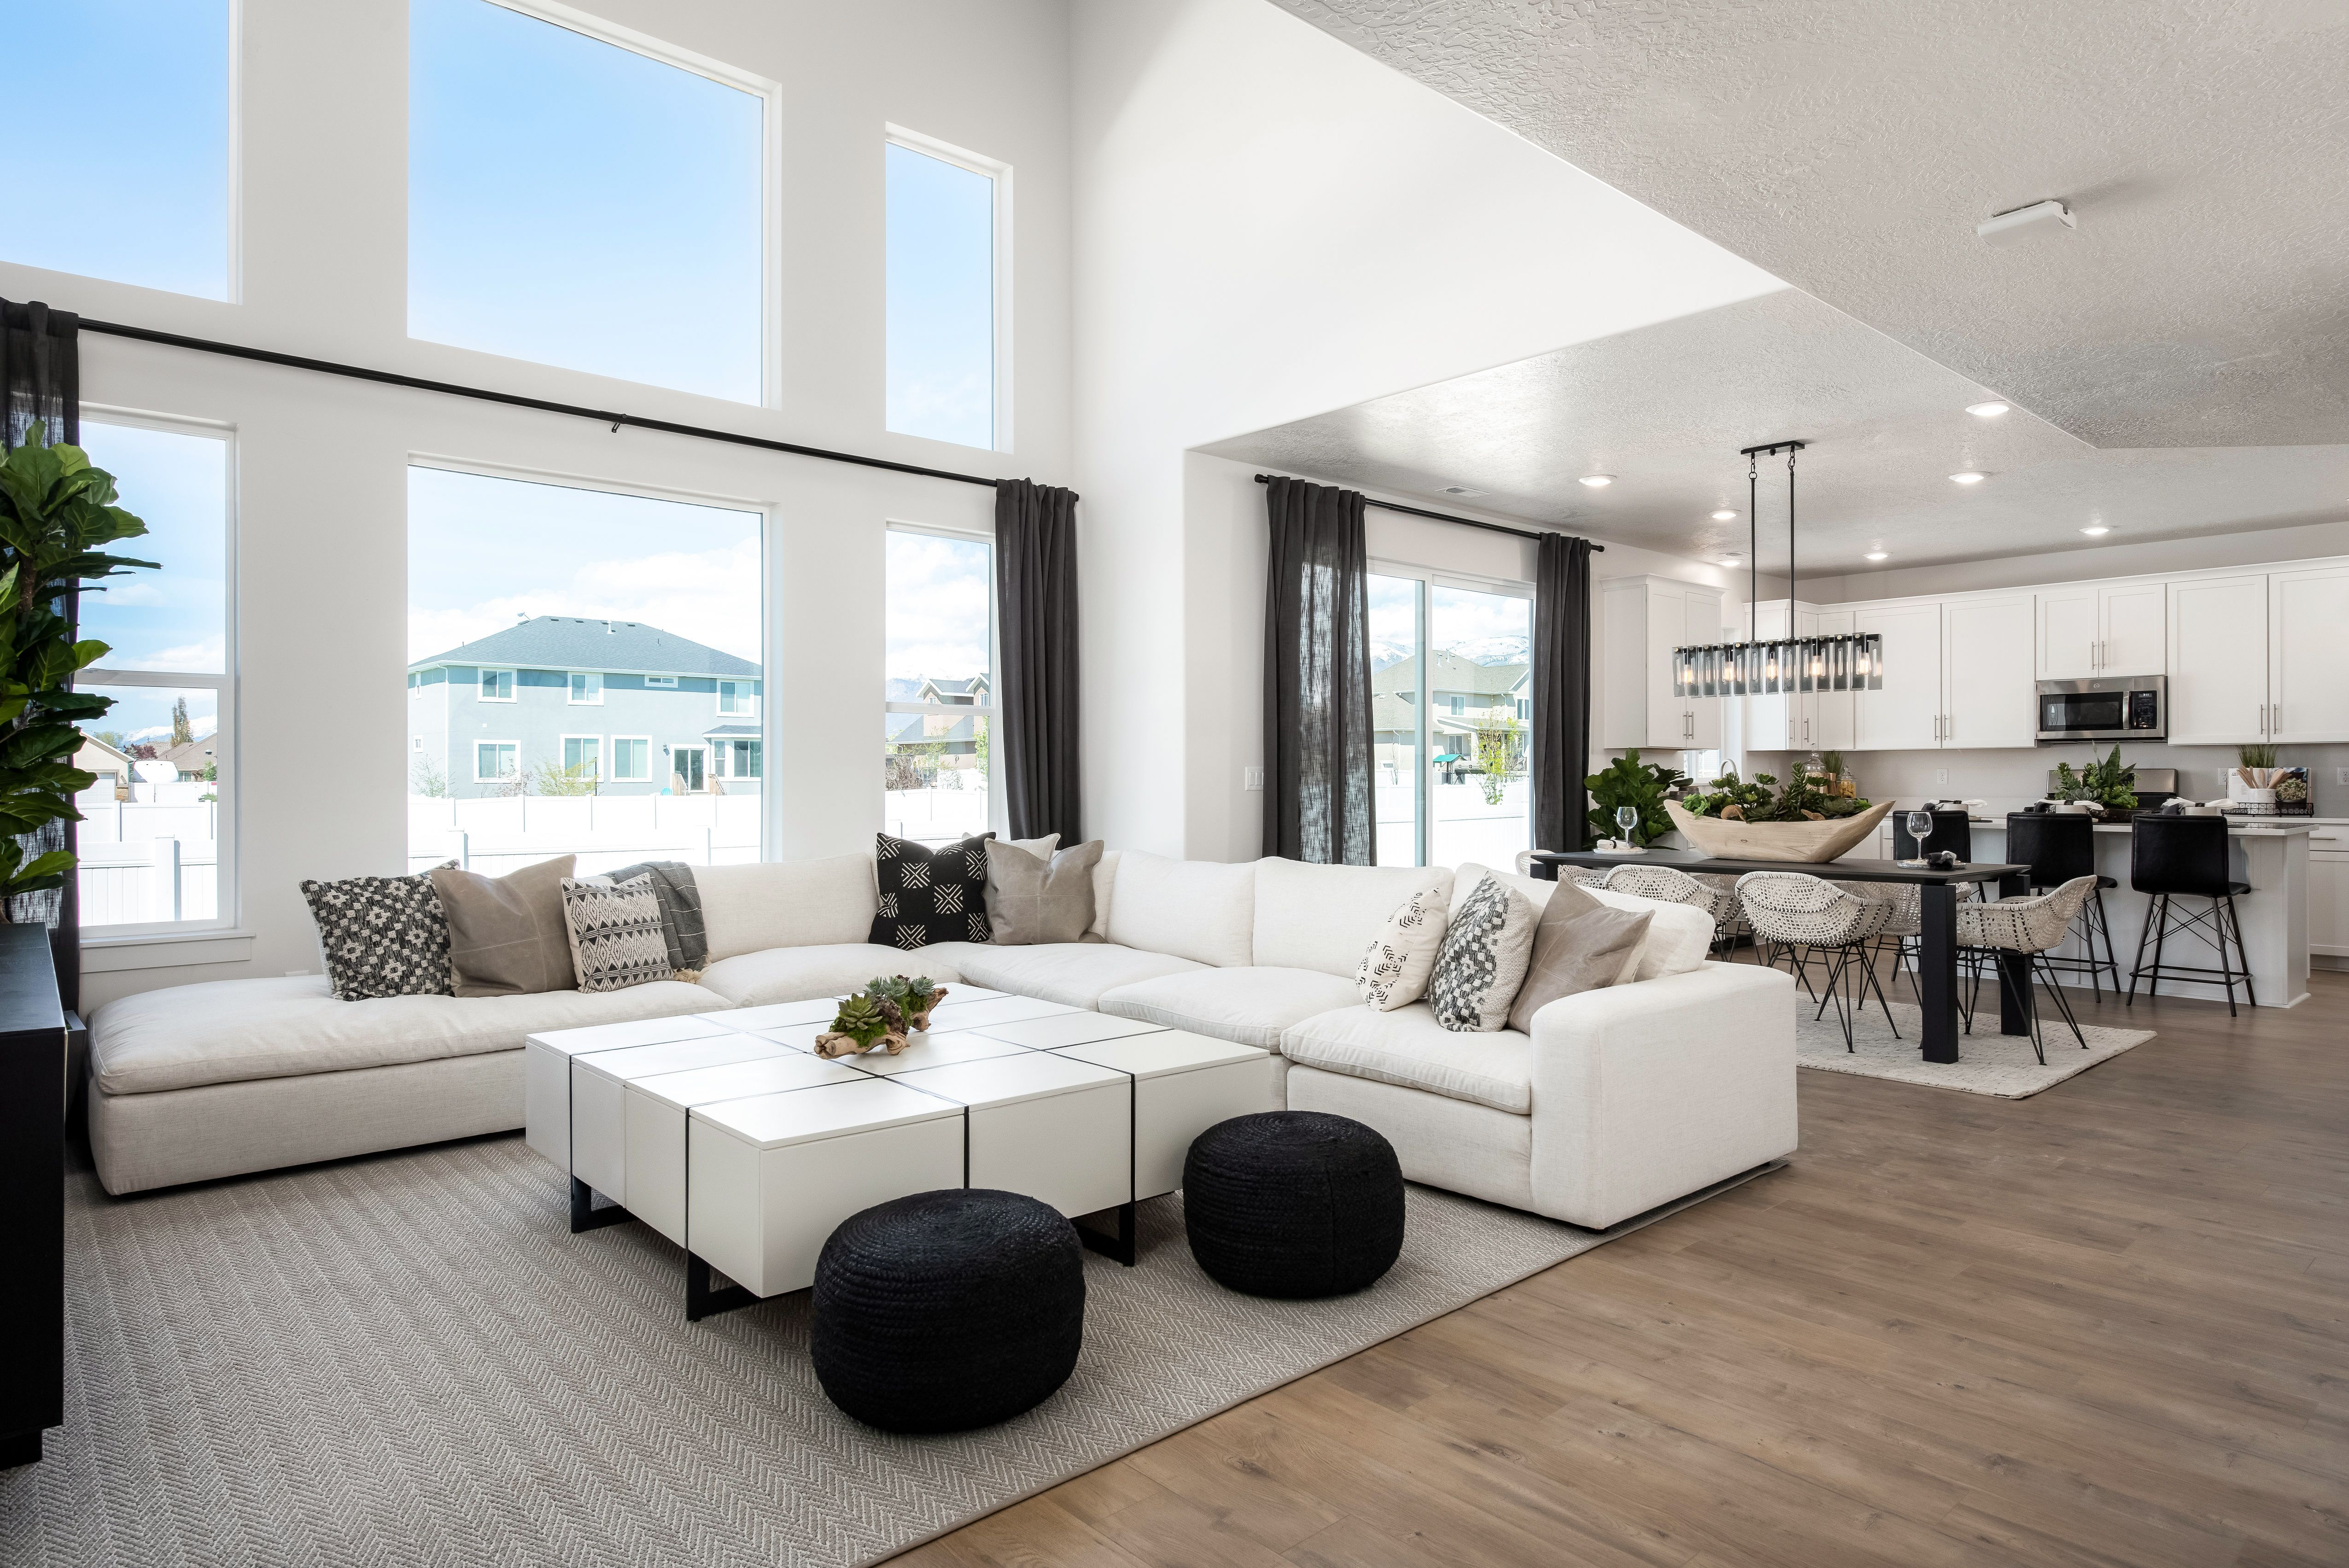 Black Accent Pieces Add Class In This Open Concept Layout At